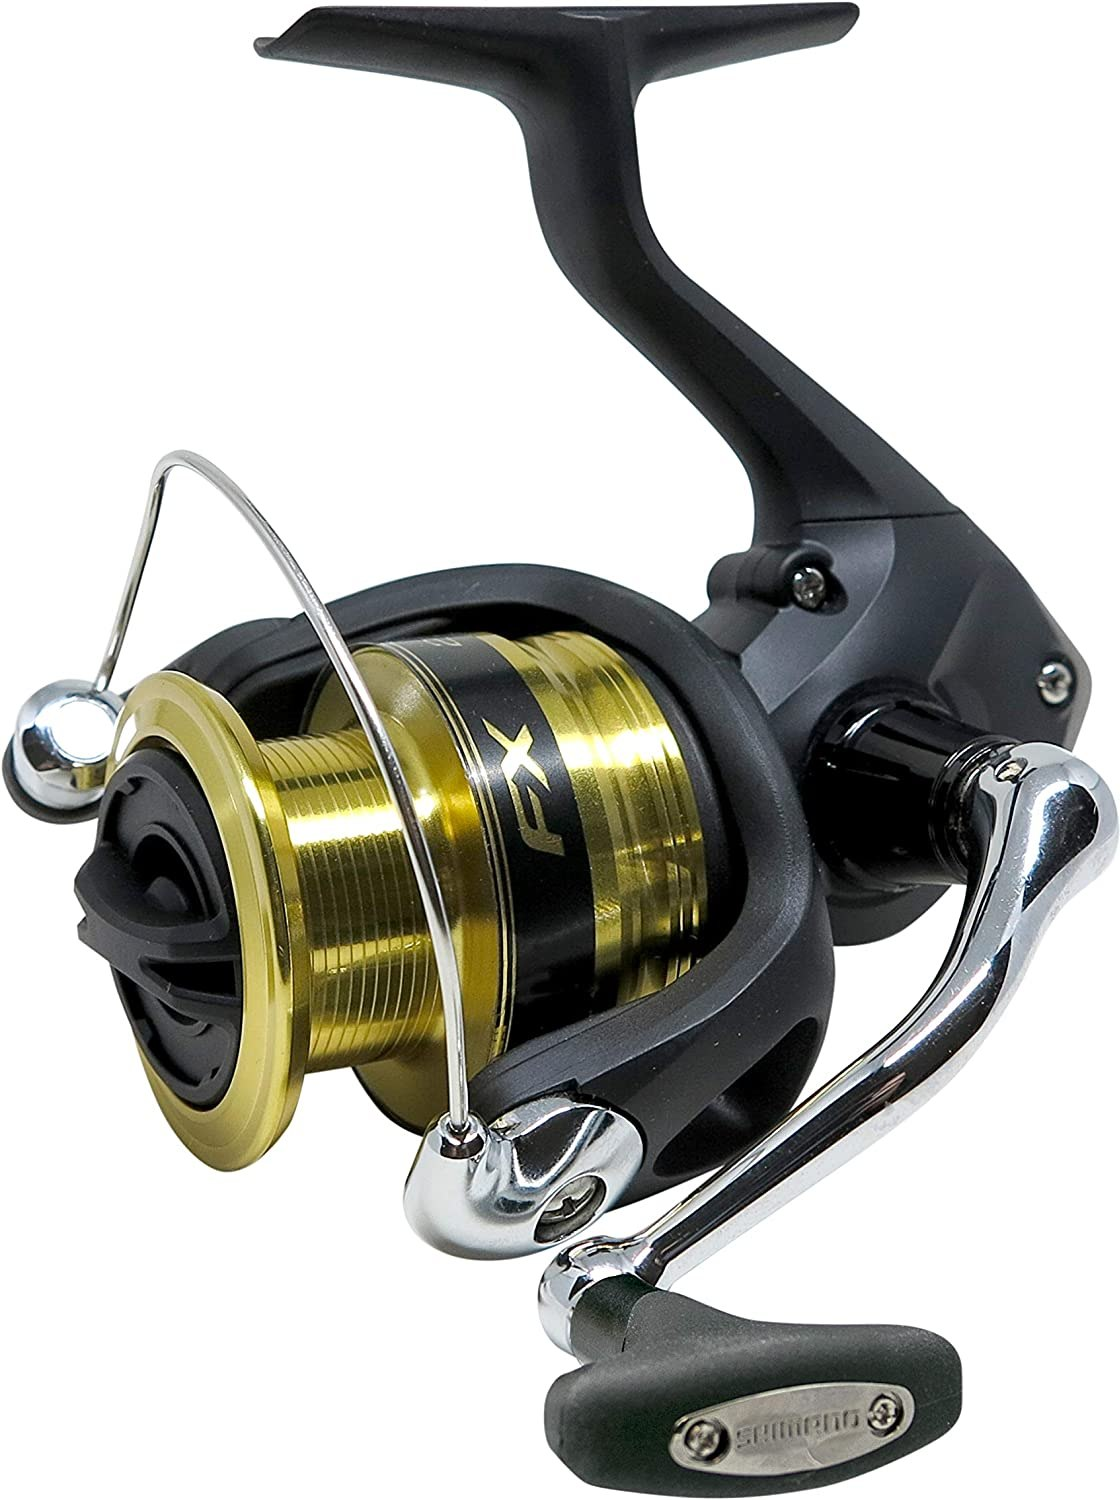 SHIMANO FX Spinning Fishing Reel review